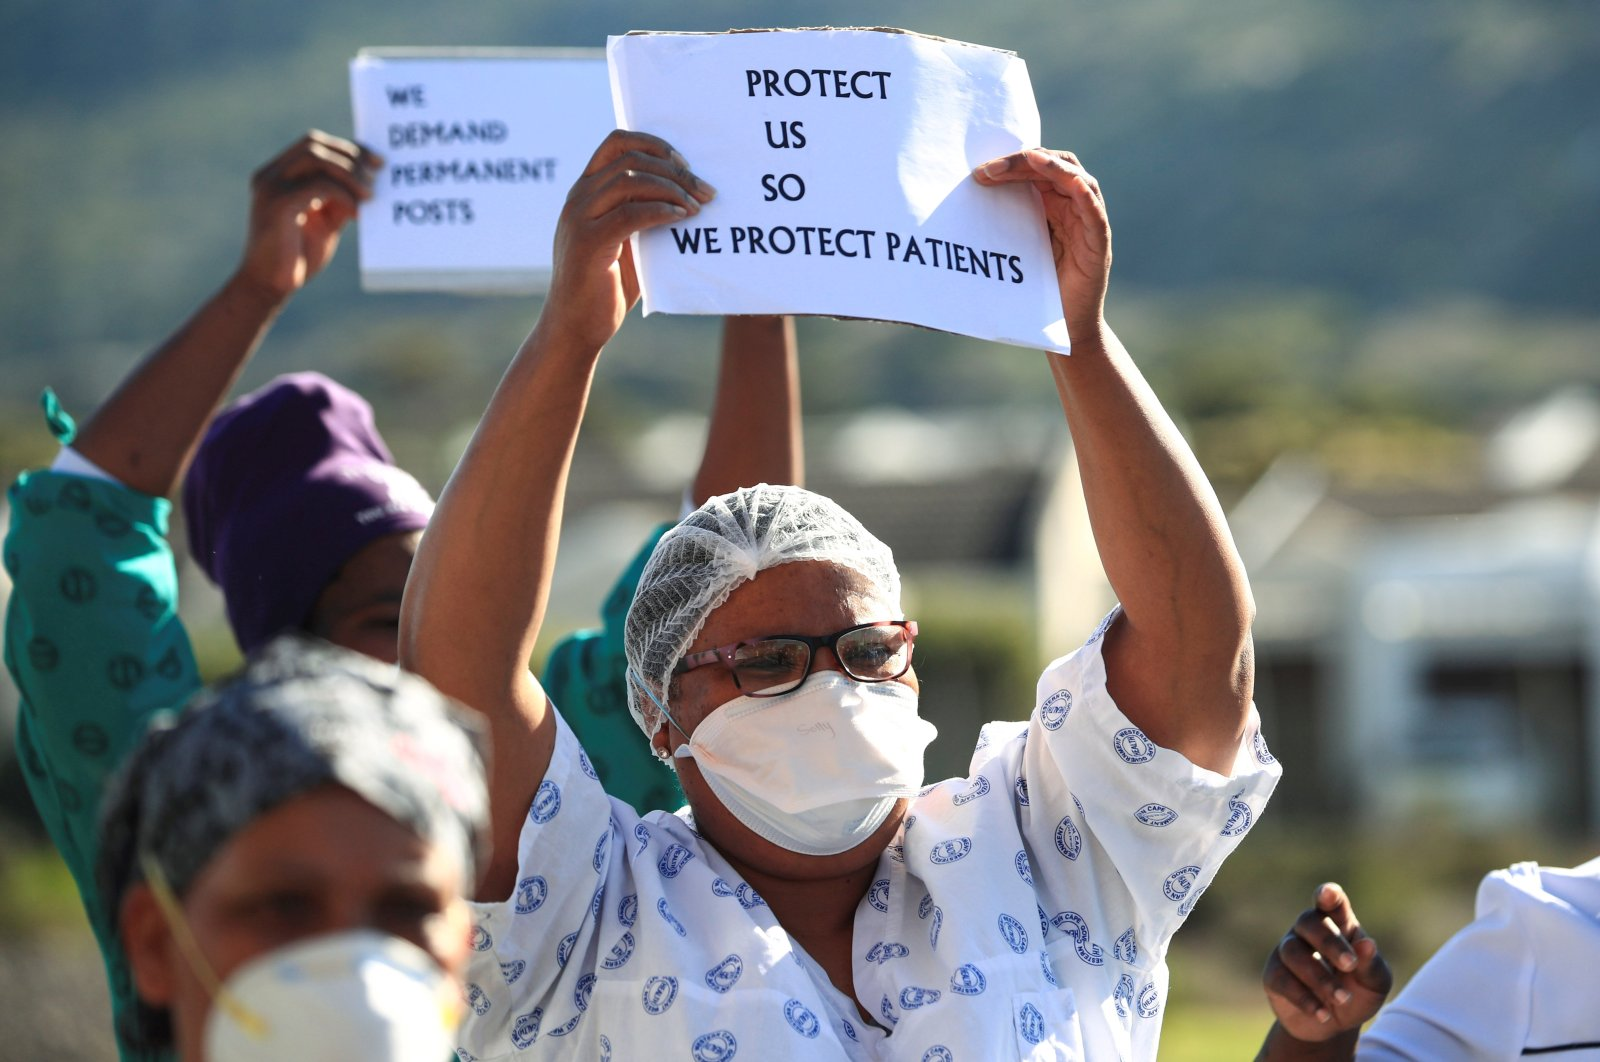 Health care workers protest over the lack of personal protective equipment (PPE) during the coronavirus outbreak outside a hospital, Cape Town, June 19, 2020. (REUTERS Photo)